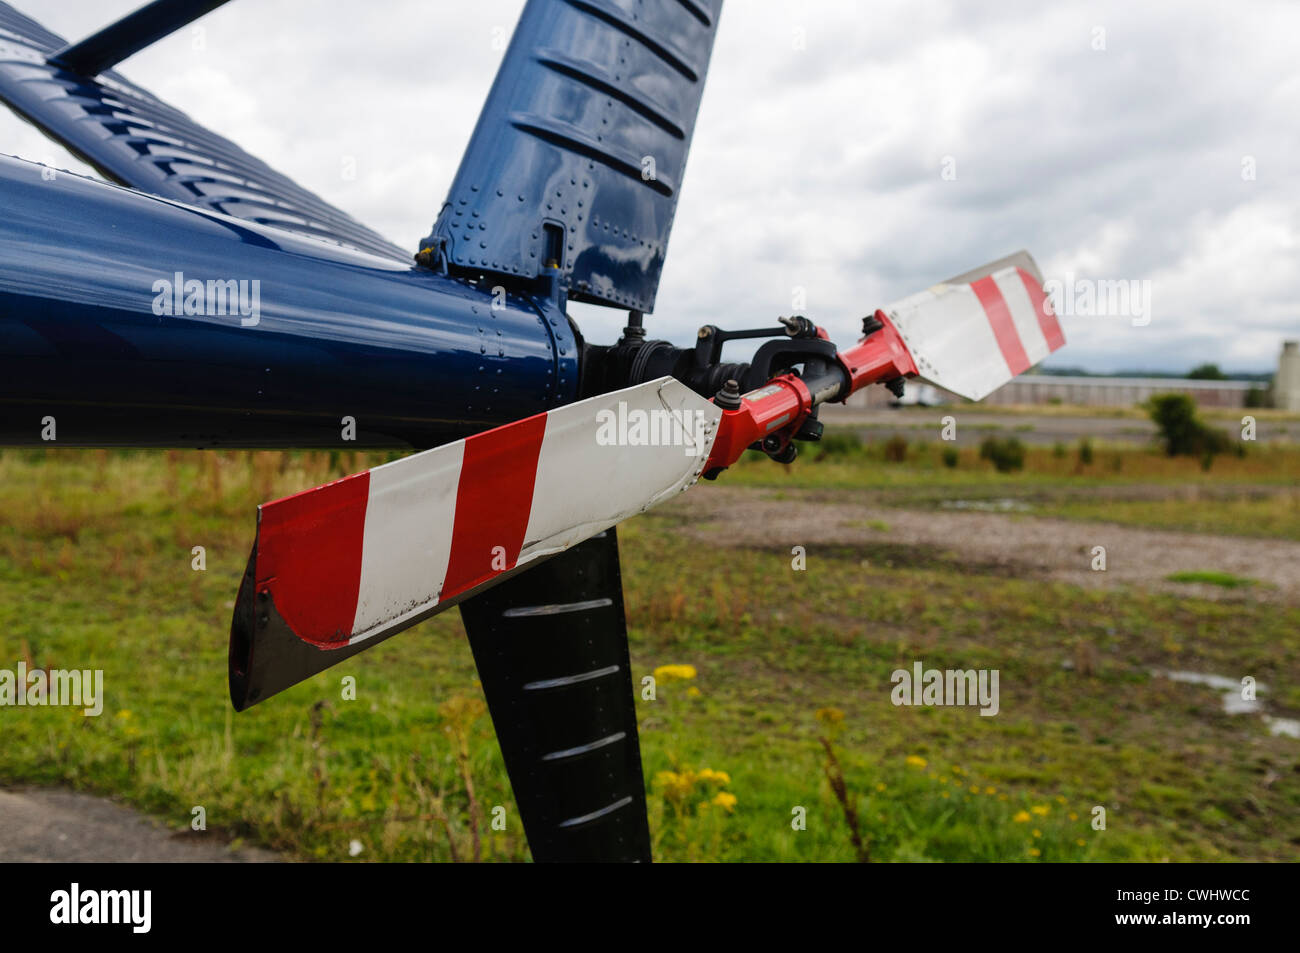 Tail rotor of 1968 Hughes OH-6A Cayuse helicopter - Stock Image